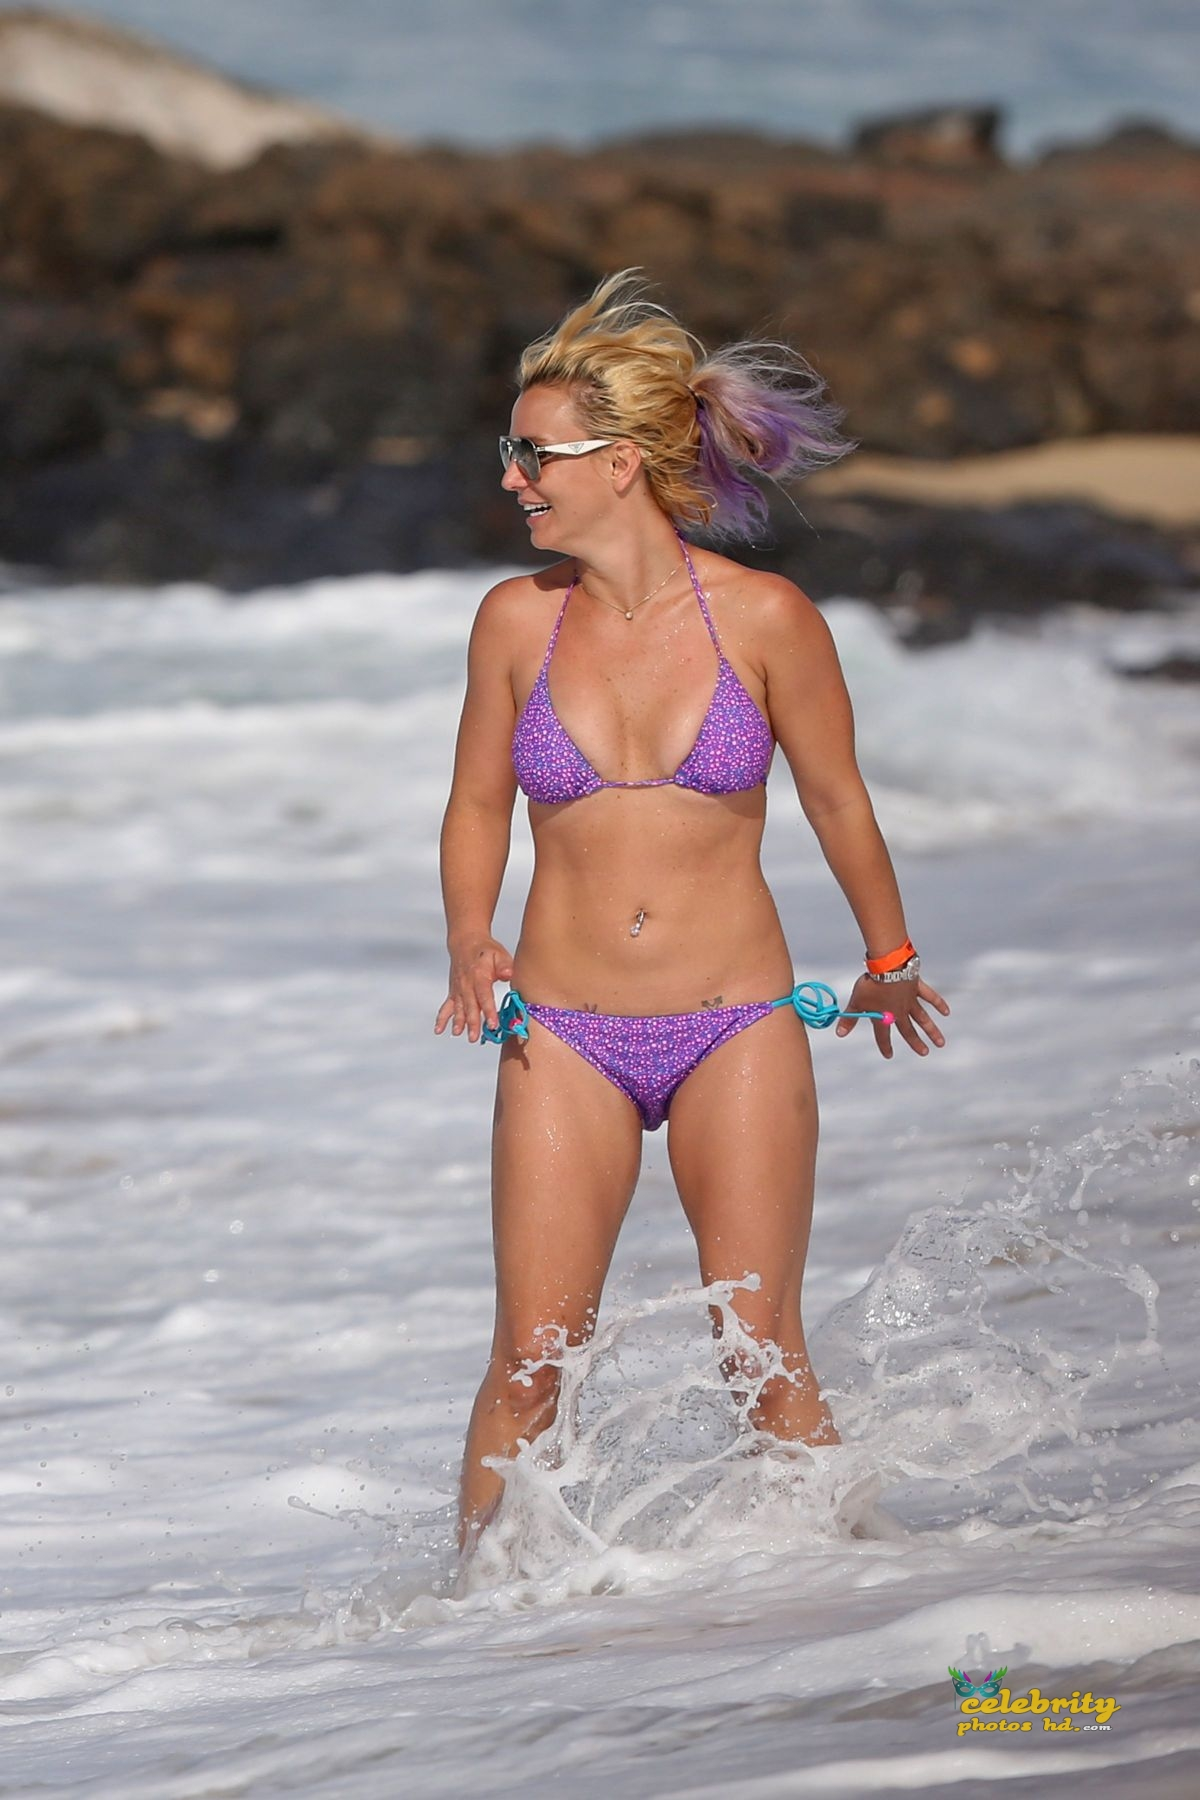 britney-spears-in-bikini-at-a-beach-in-hawaii-07-23-2015_9